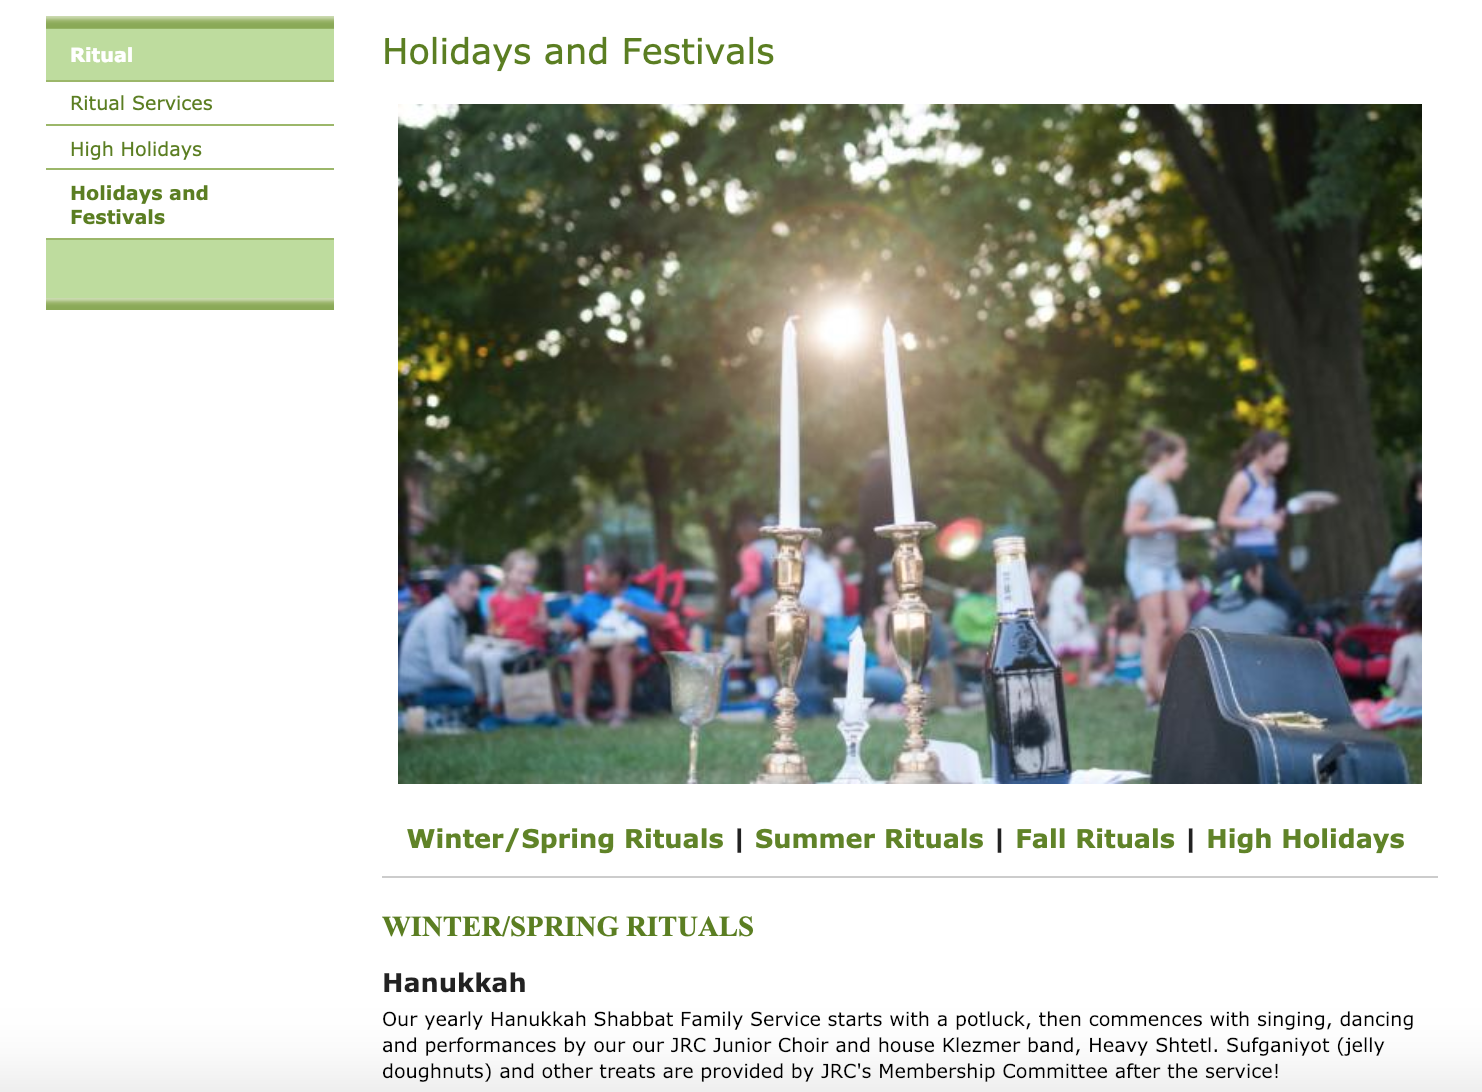 new holidays and festivals page